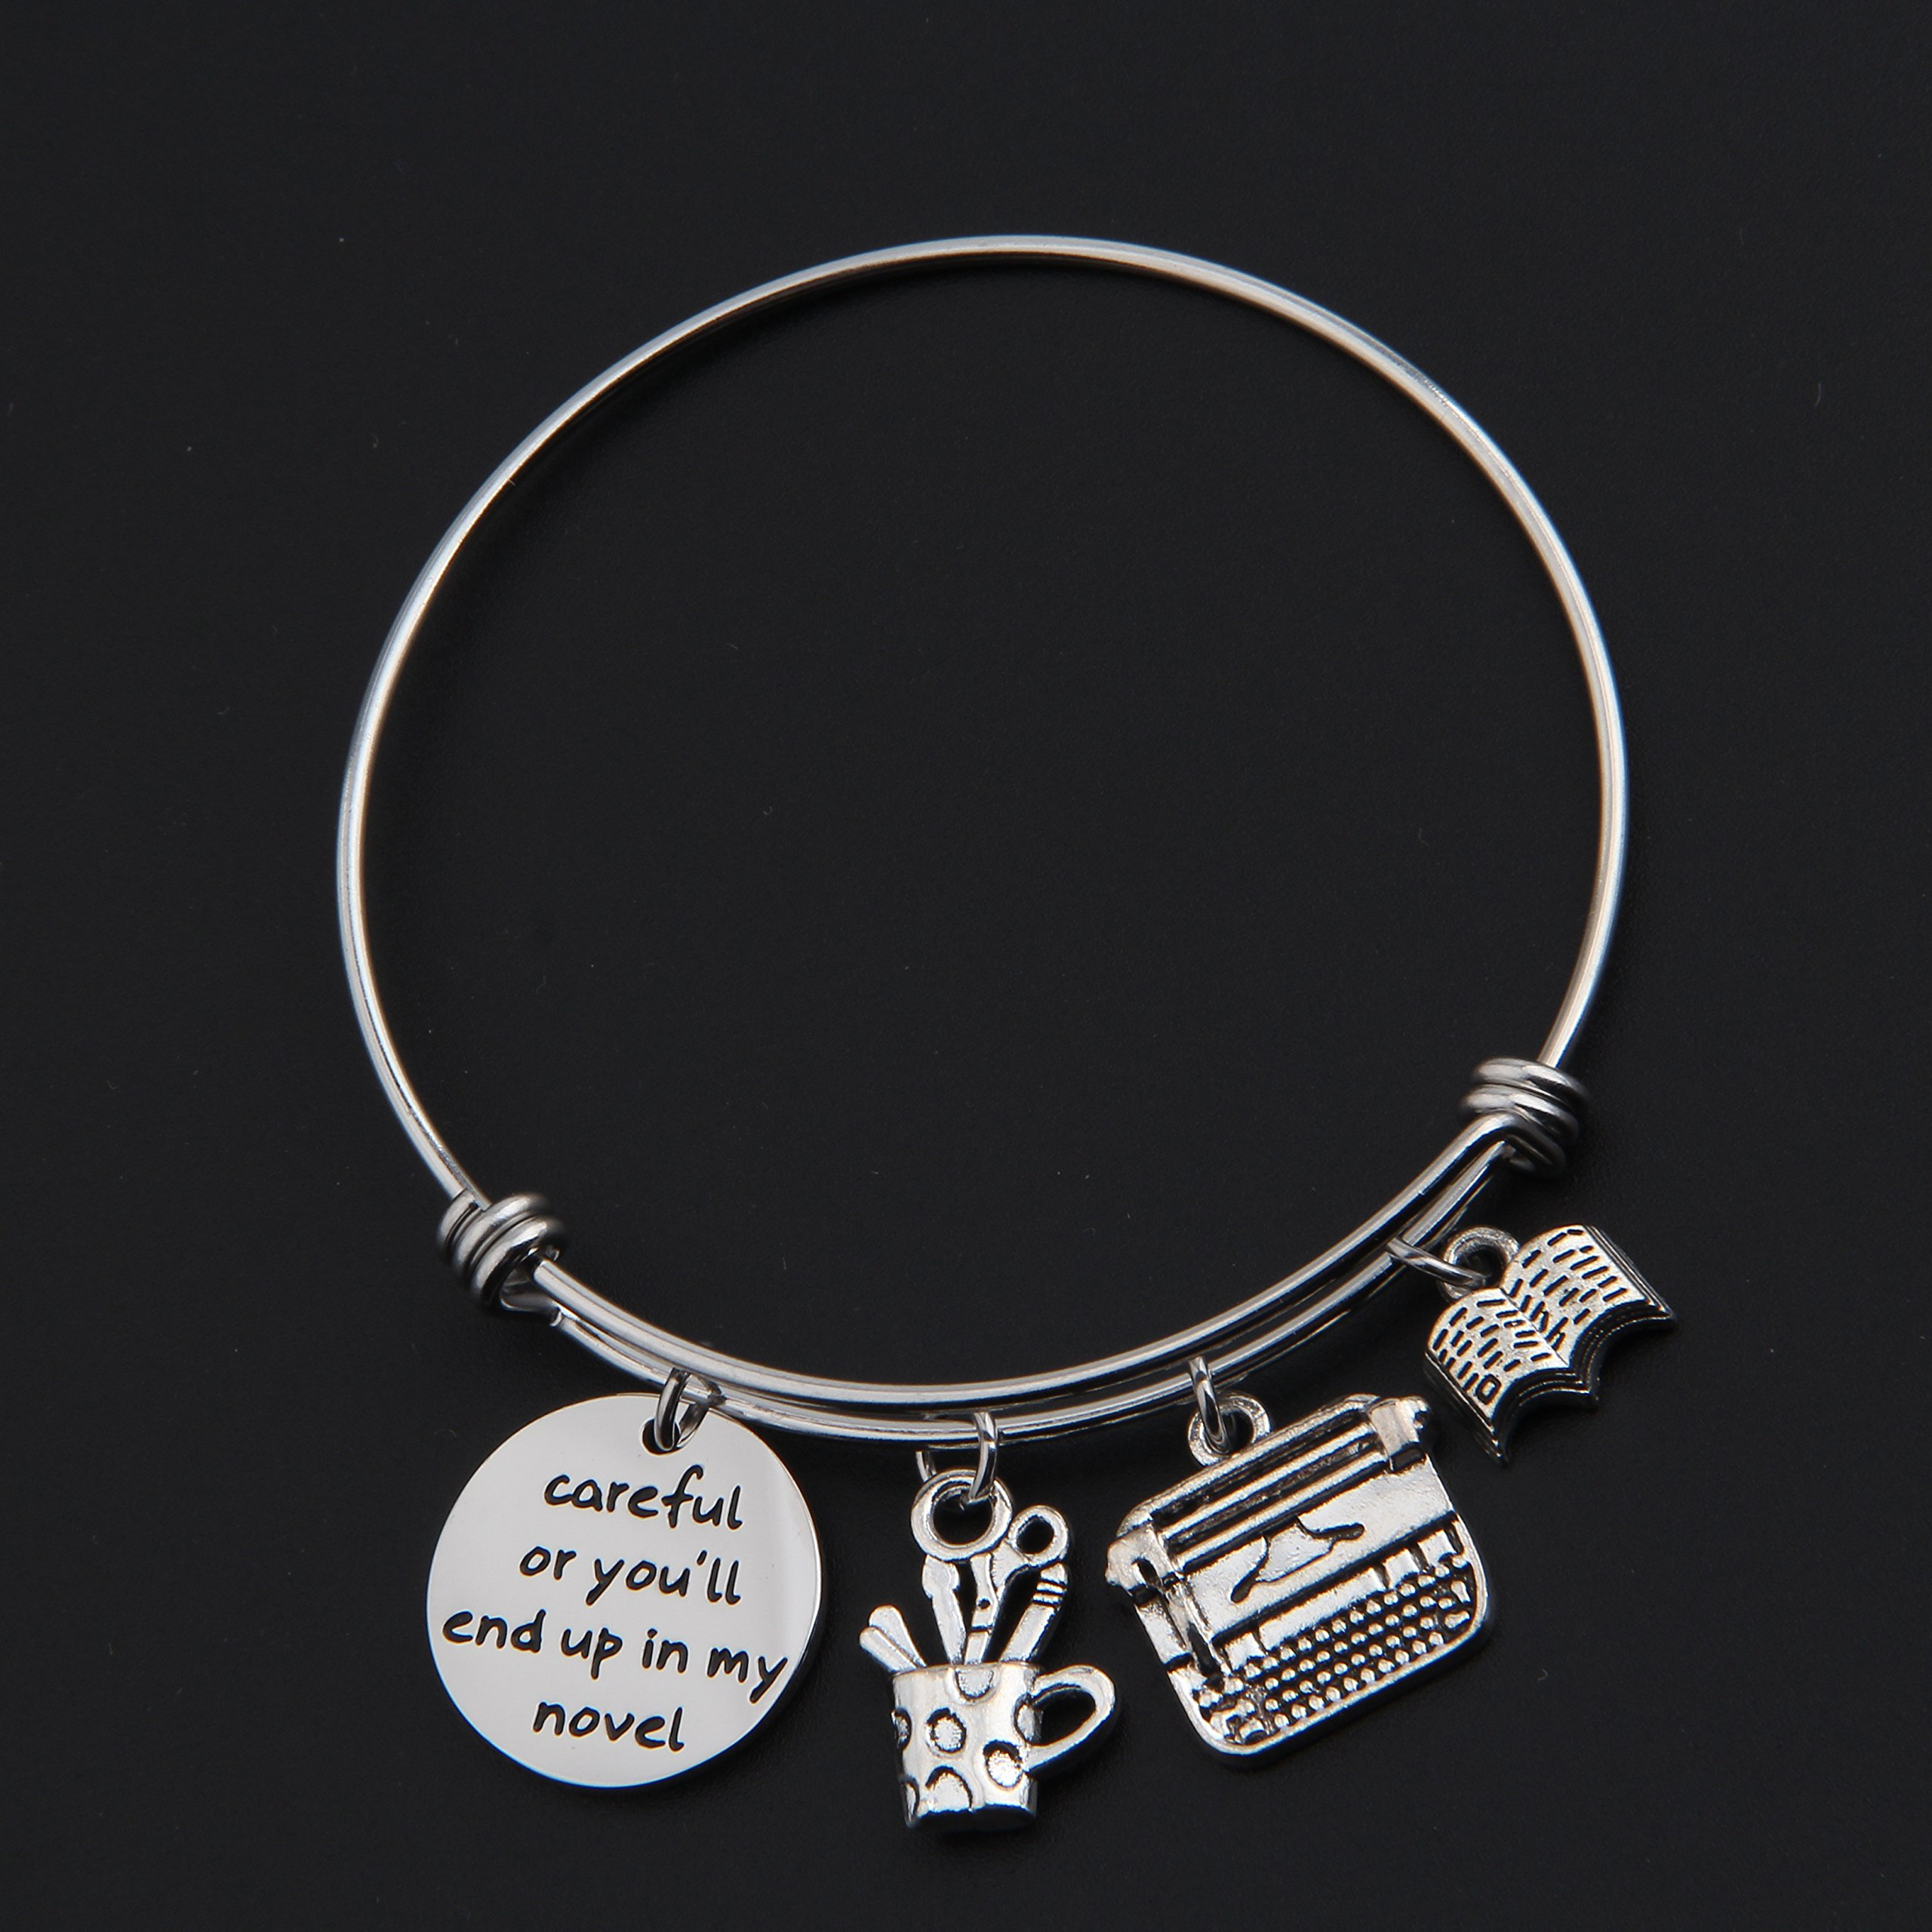 Gzrlyf Writer Bracelet Author Bracelet Writer Gift Novelist Gift Careful Or Youll End Up In My Novel Jewelry Writing Gift Author Jewelry (Writer bracelet) by Gzrlyf (Image #6)